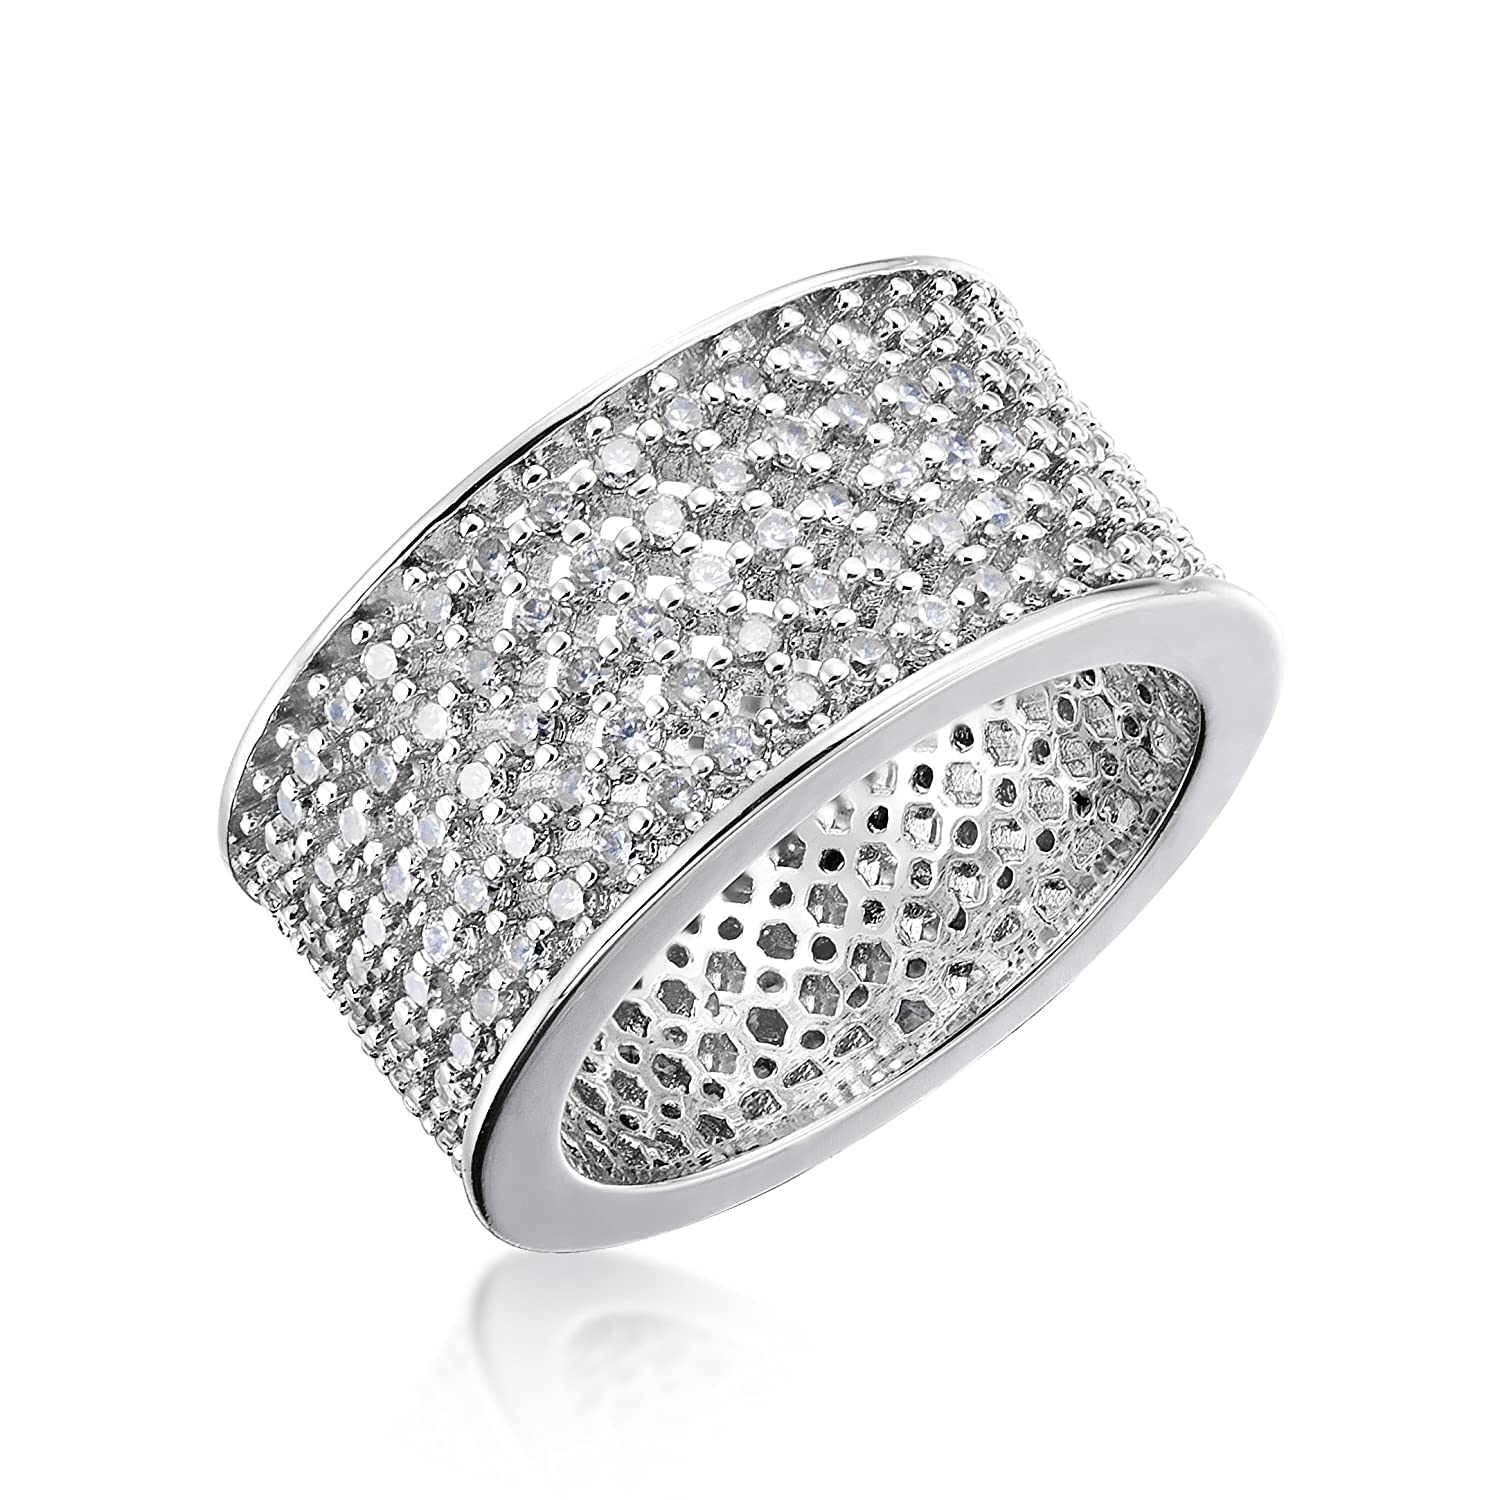 Kezef Cubic Zirconia Micro Pave CZ Wide Band Wedding Ring Size 5-9 By Creations